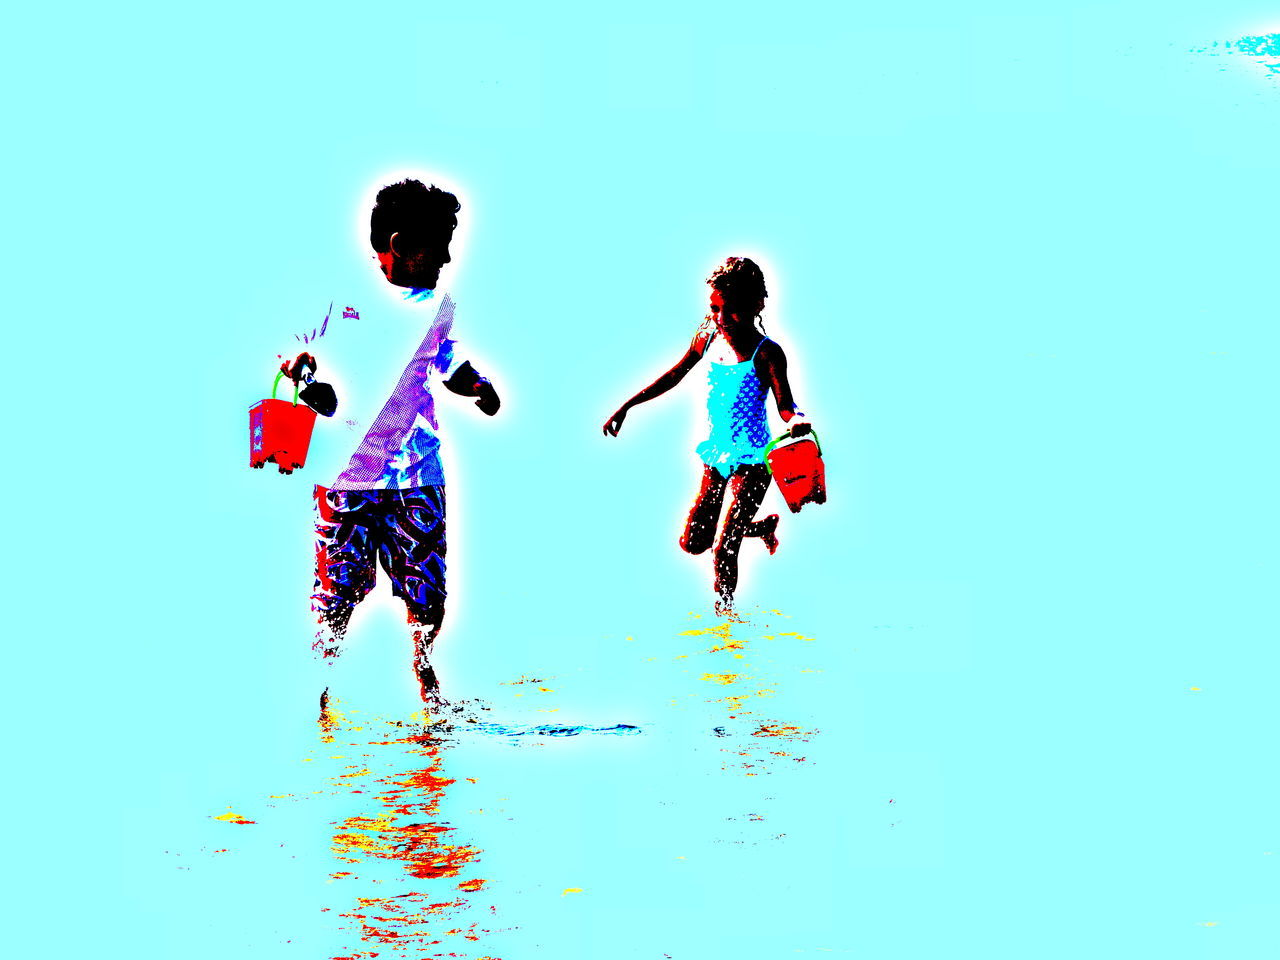 Children playing on a beach Beach Carefree Children Fun Leisure Activity Manipulated Playing Recreational Pursuit Sea